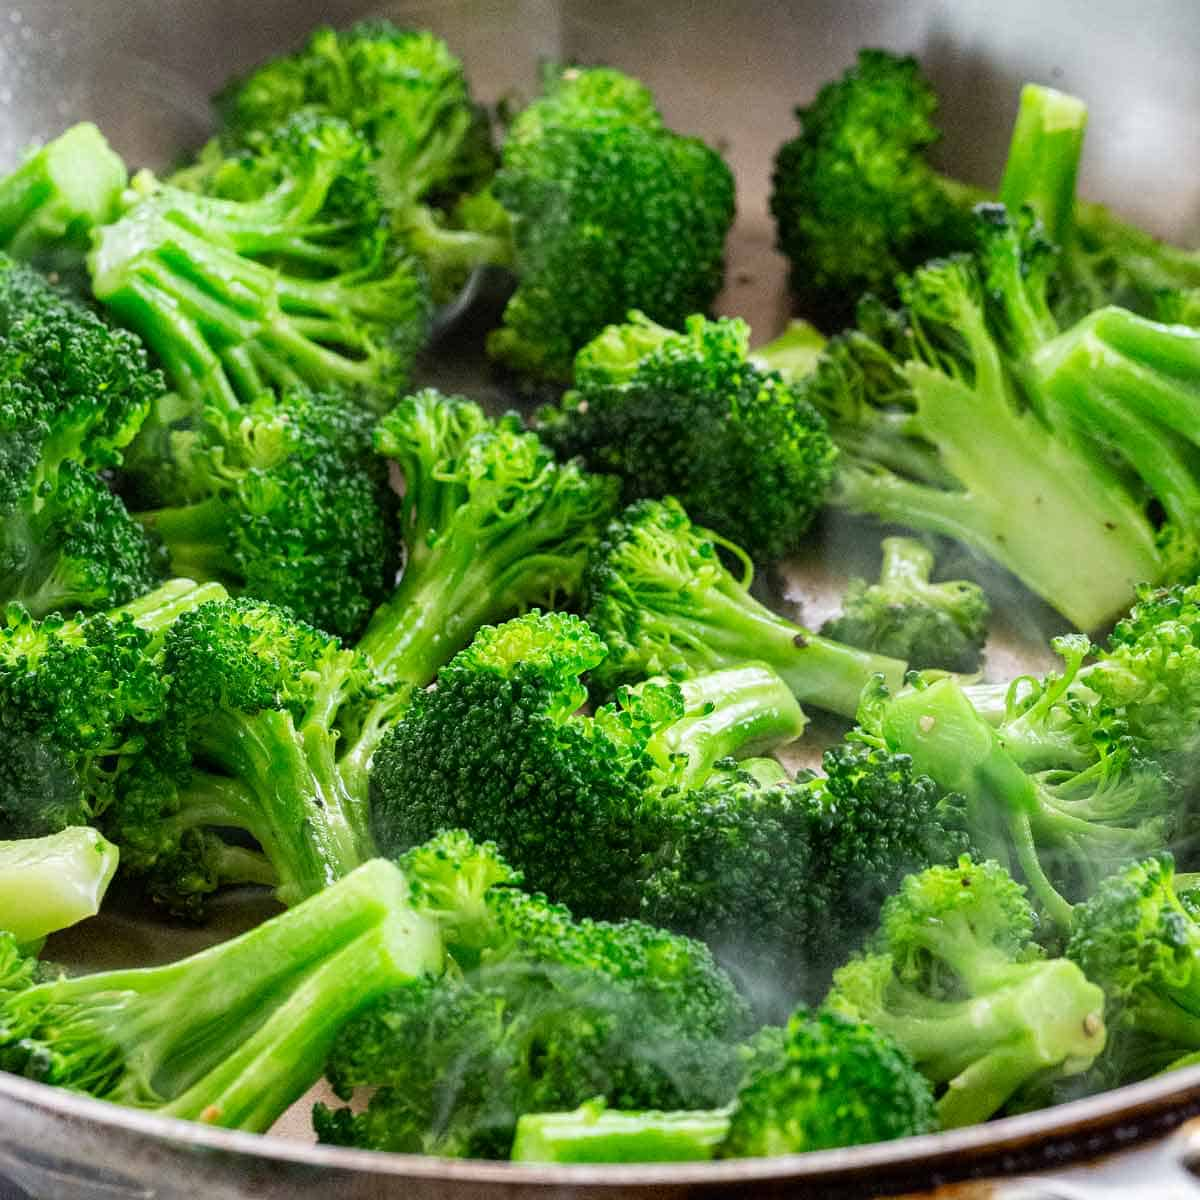 Super Healthy Foods, 14 FOODS YOU CAN EAT AS MUCH OF AS YOU WANT AND NOT GAIN WEIGHT, BODYFIT